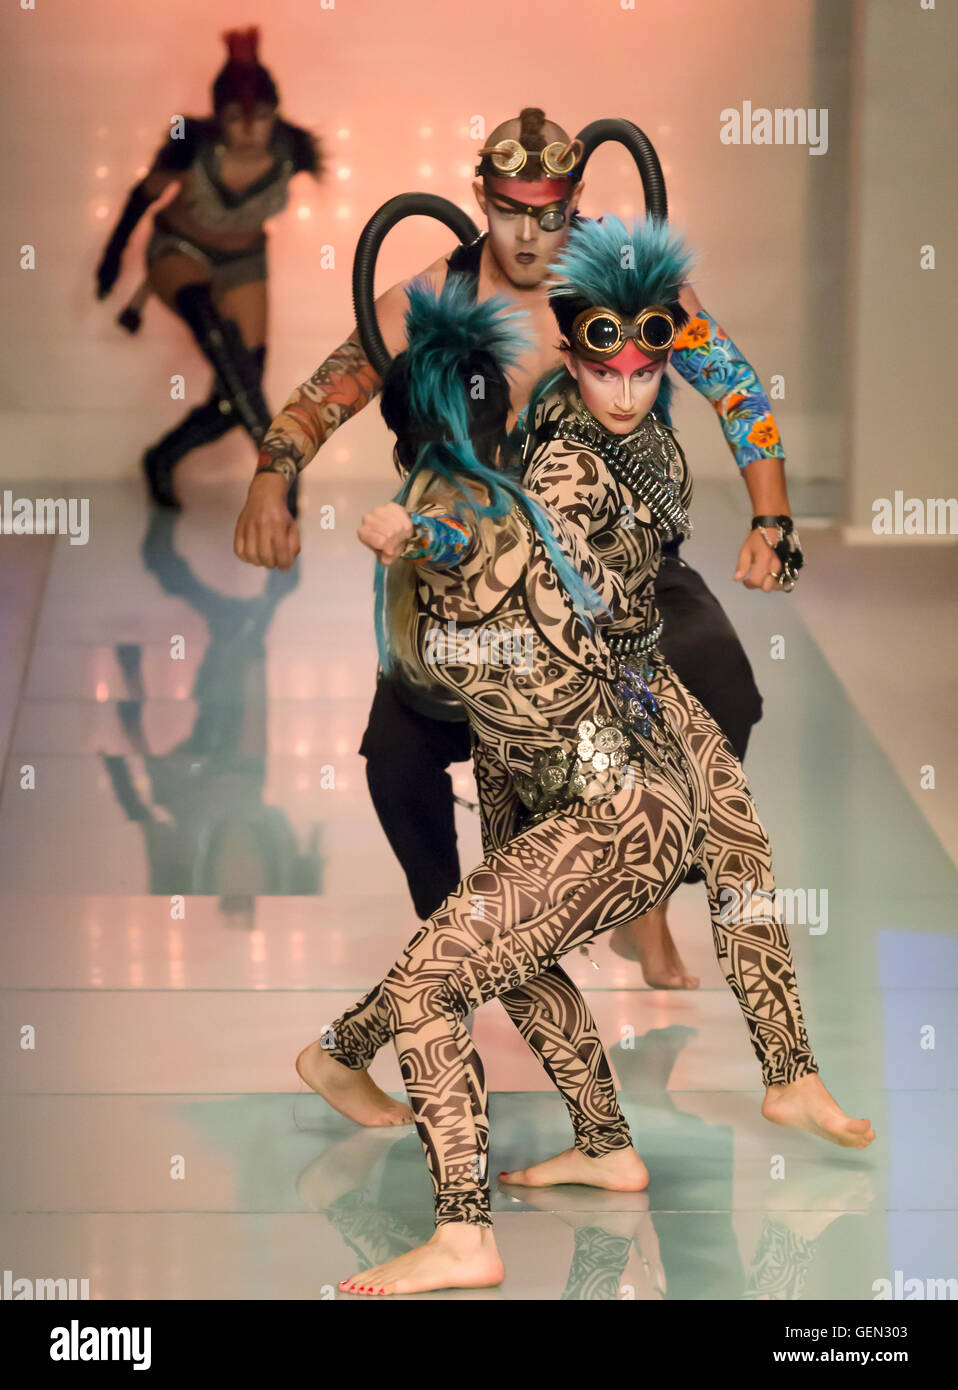 MIAMI BEACH, FL - JULY 16, 2016: Dancers perform at the opening of the runway show for the Luli Fama 2017 Collection - Stock Image